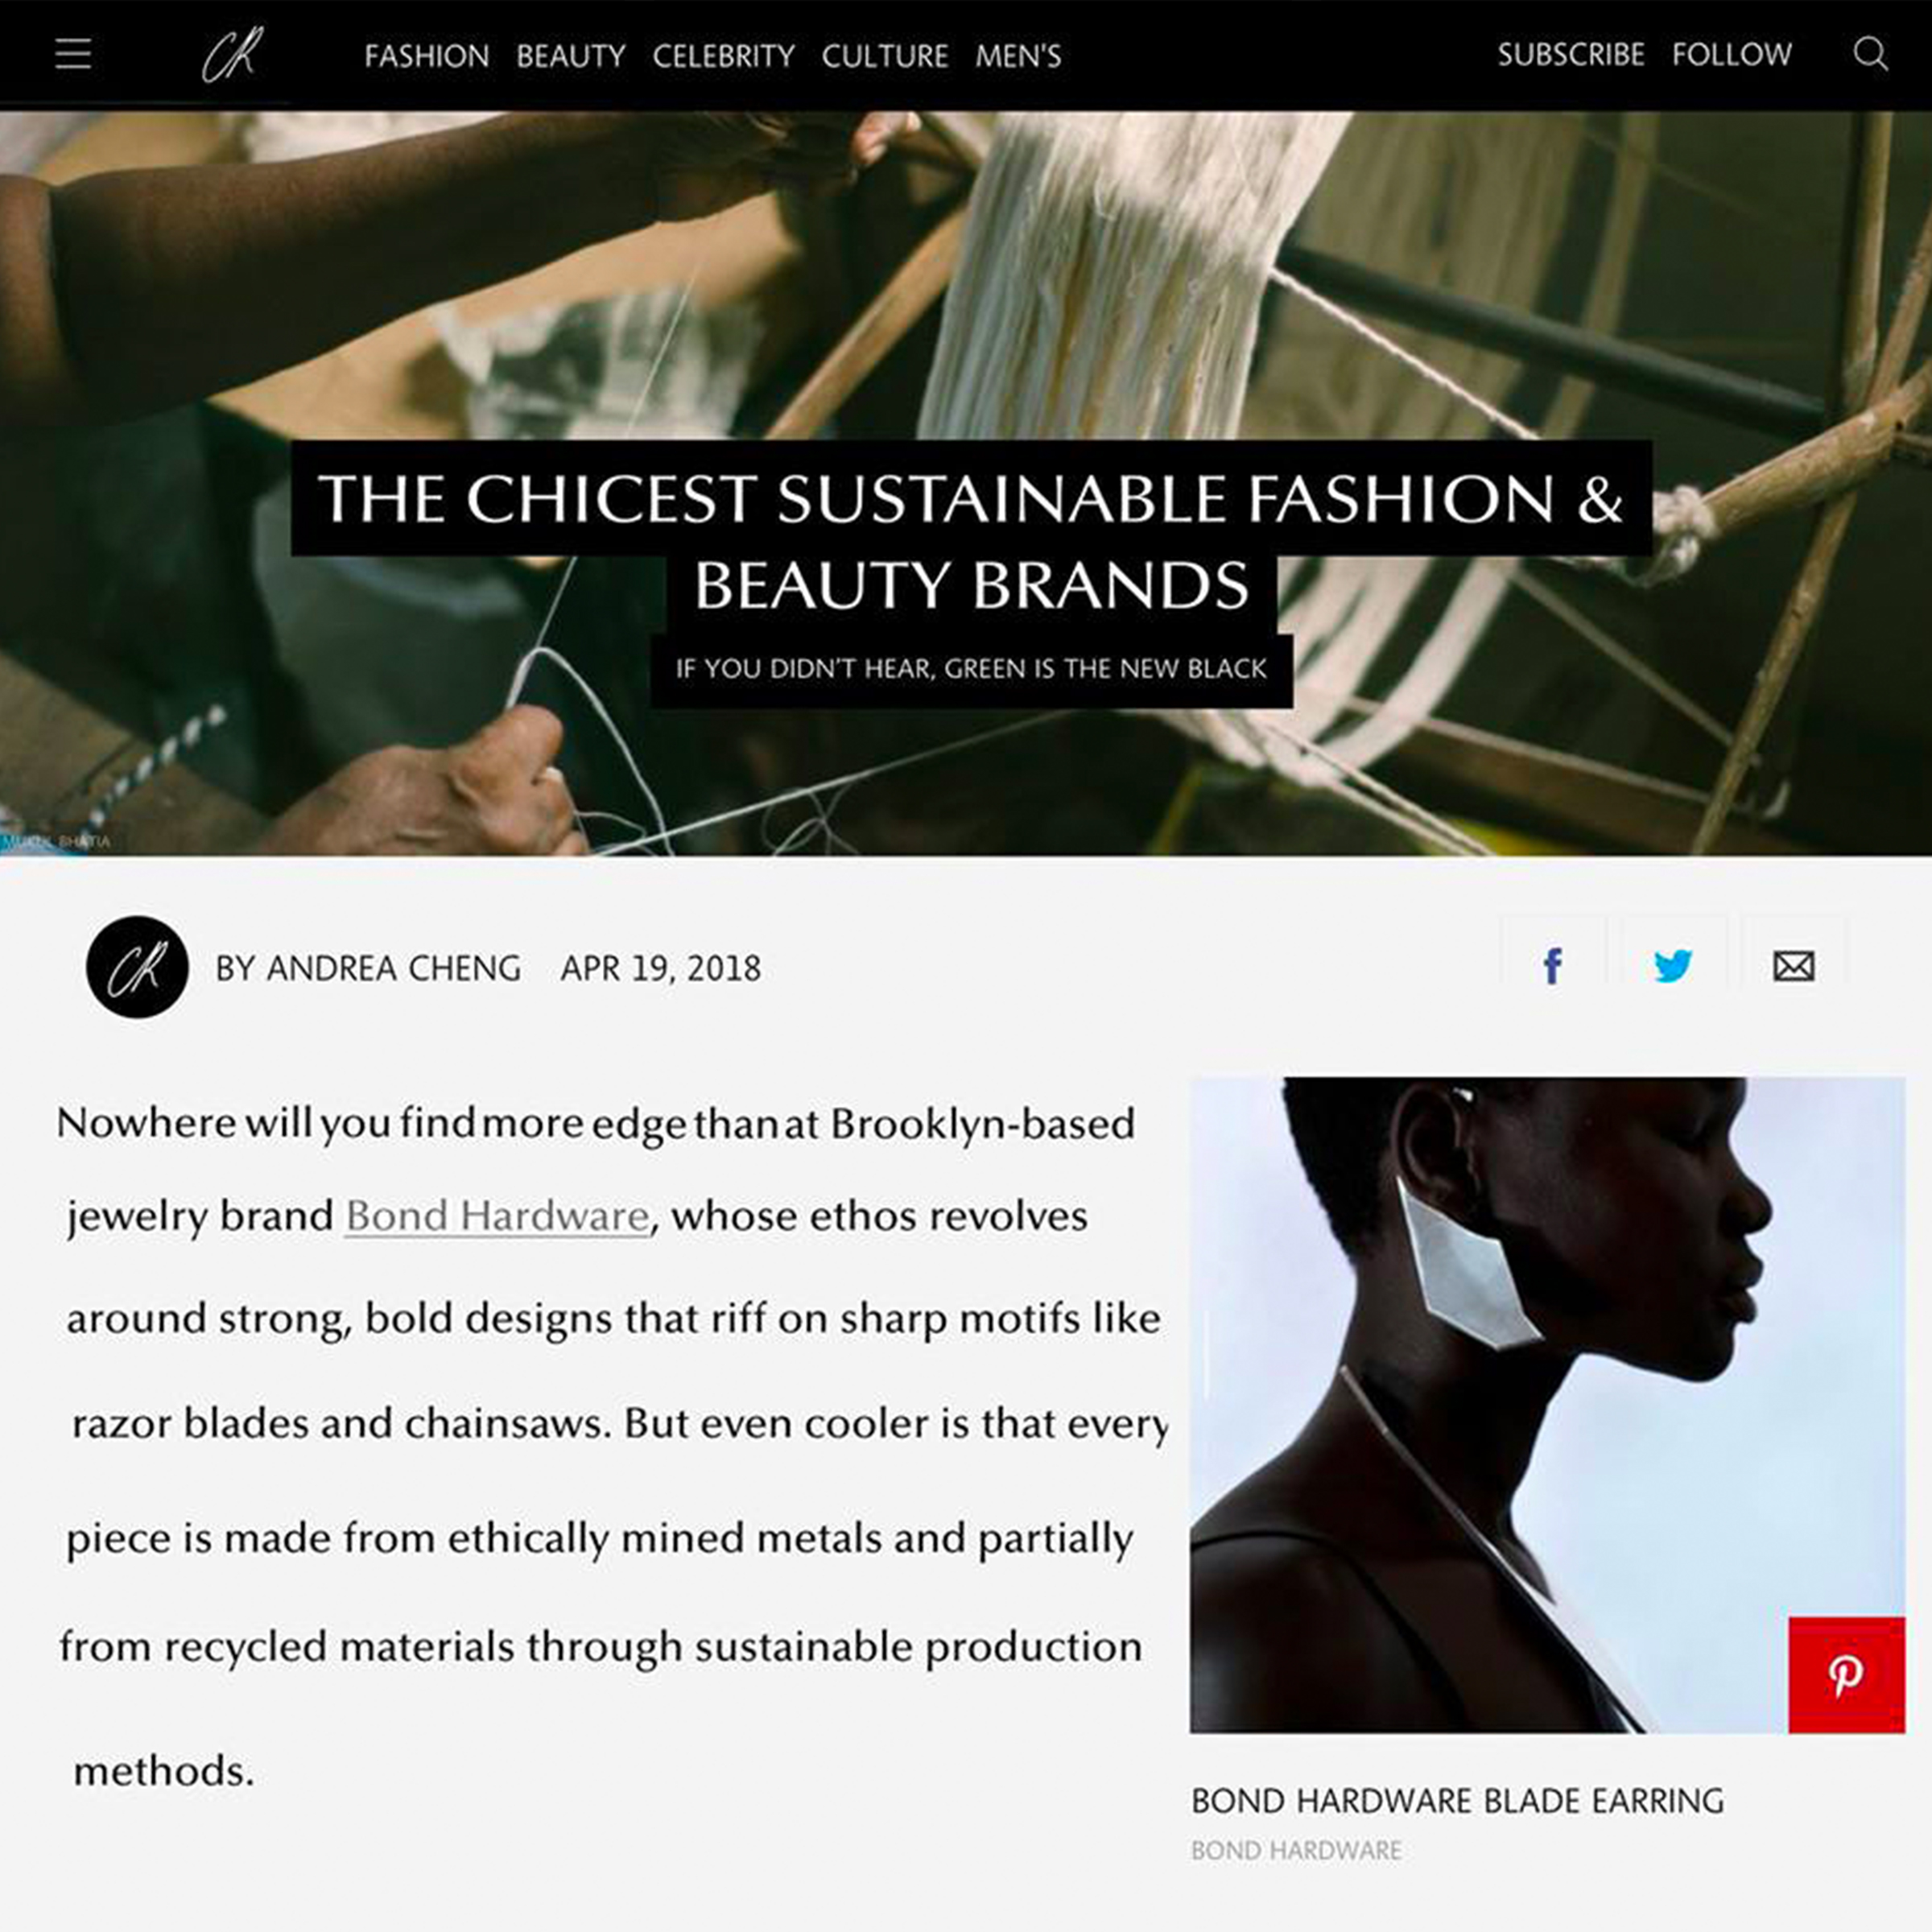 CR Fashion Book Names BOND Hardware Among the Chicest Sustainable Fashion & Beauty Brands